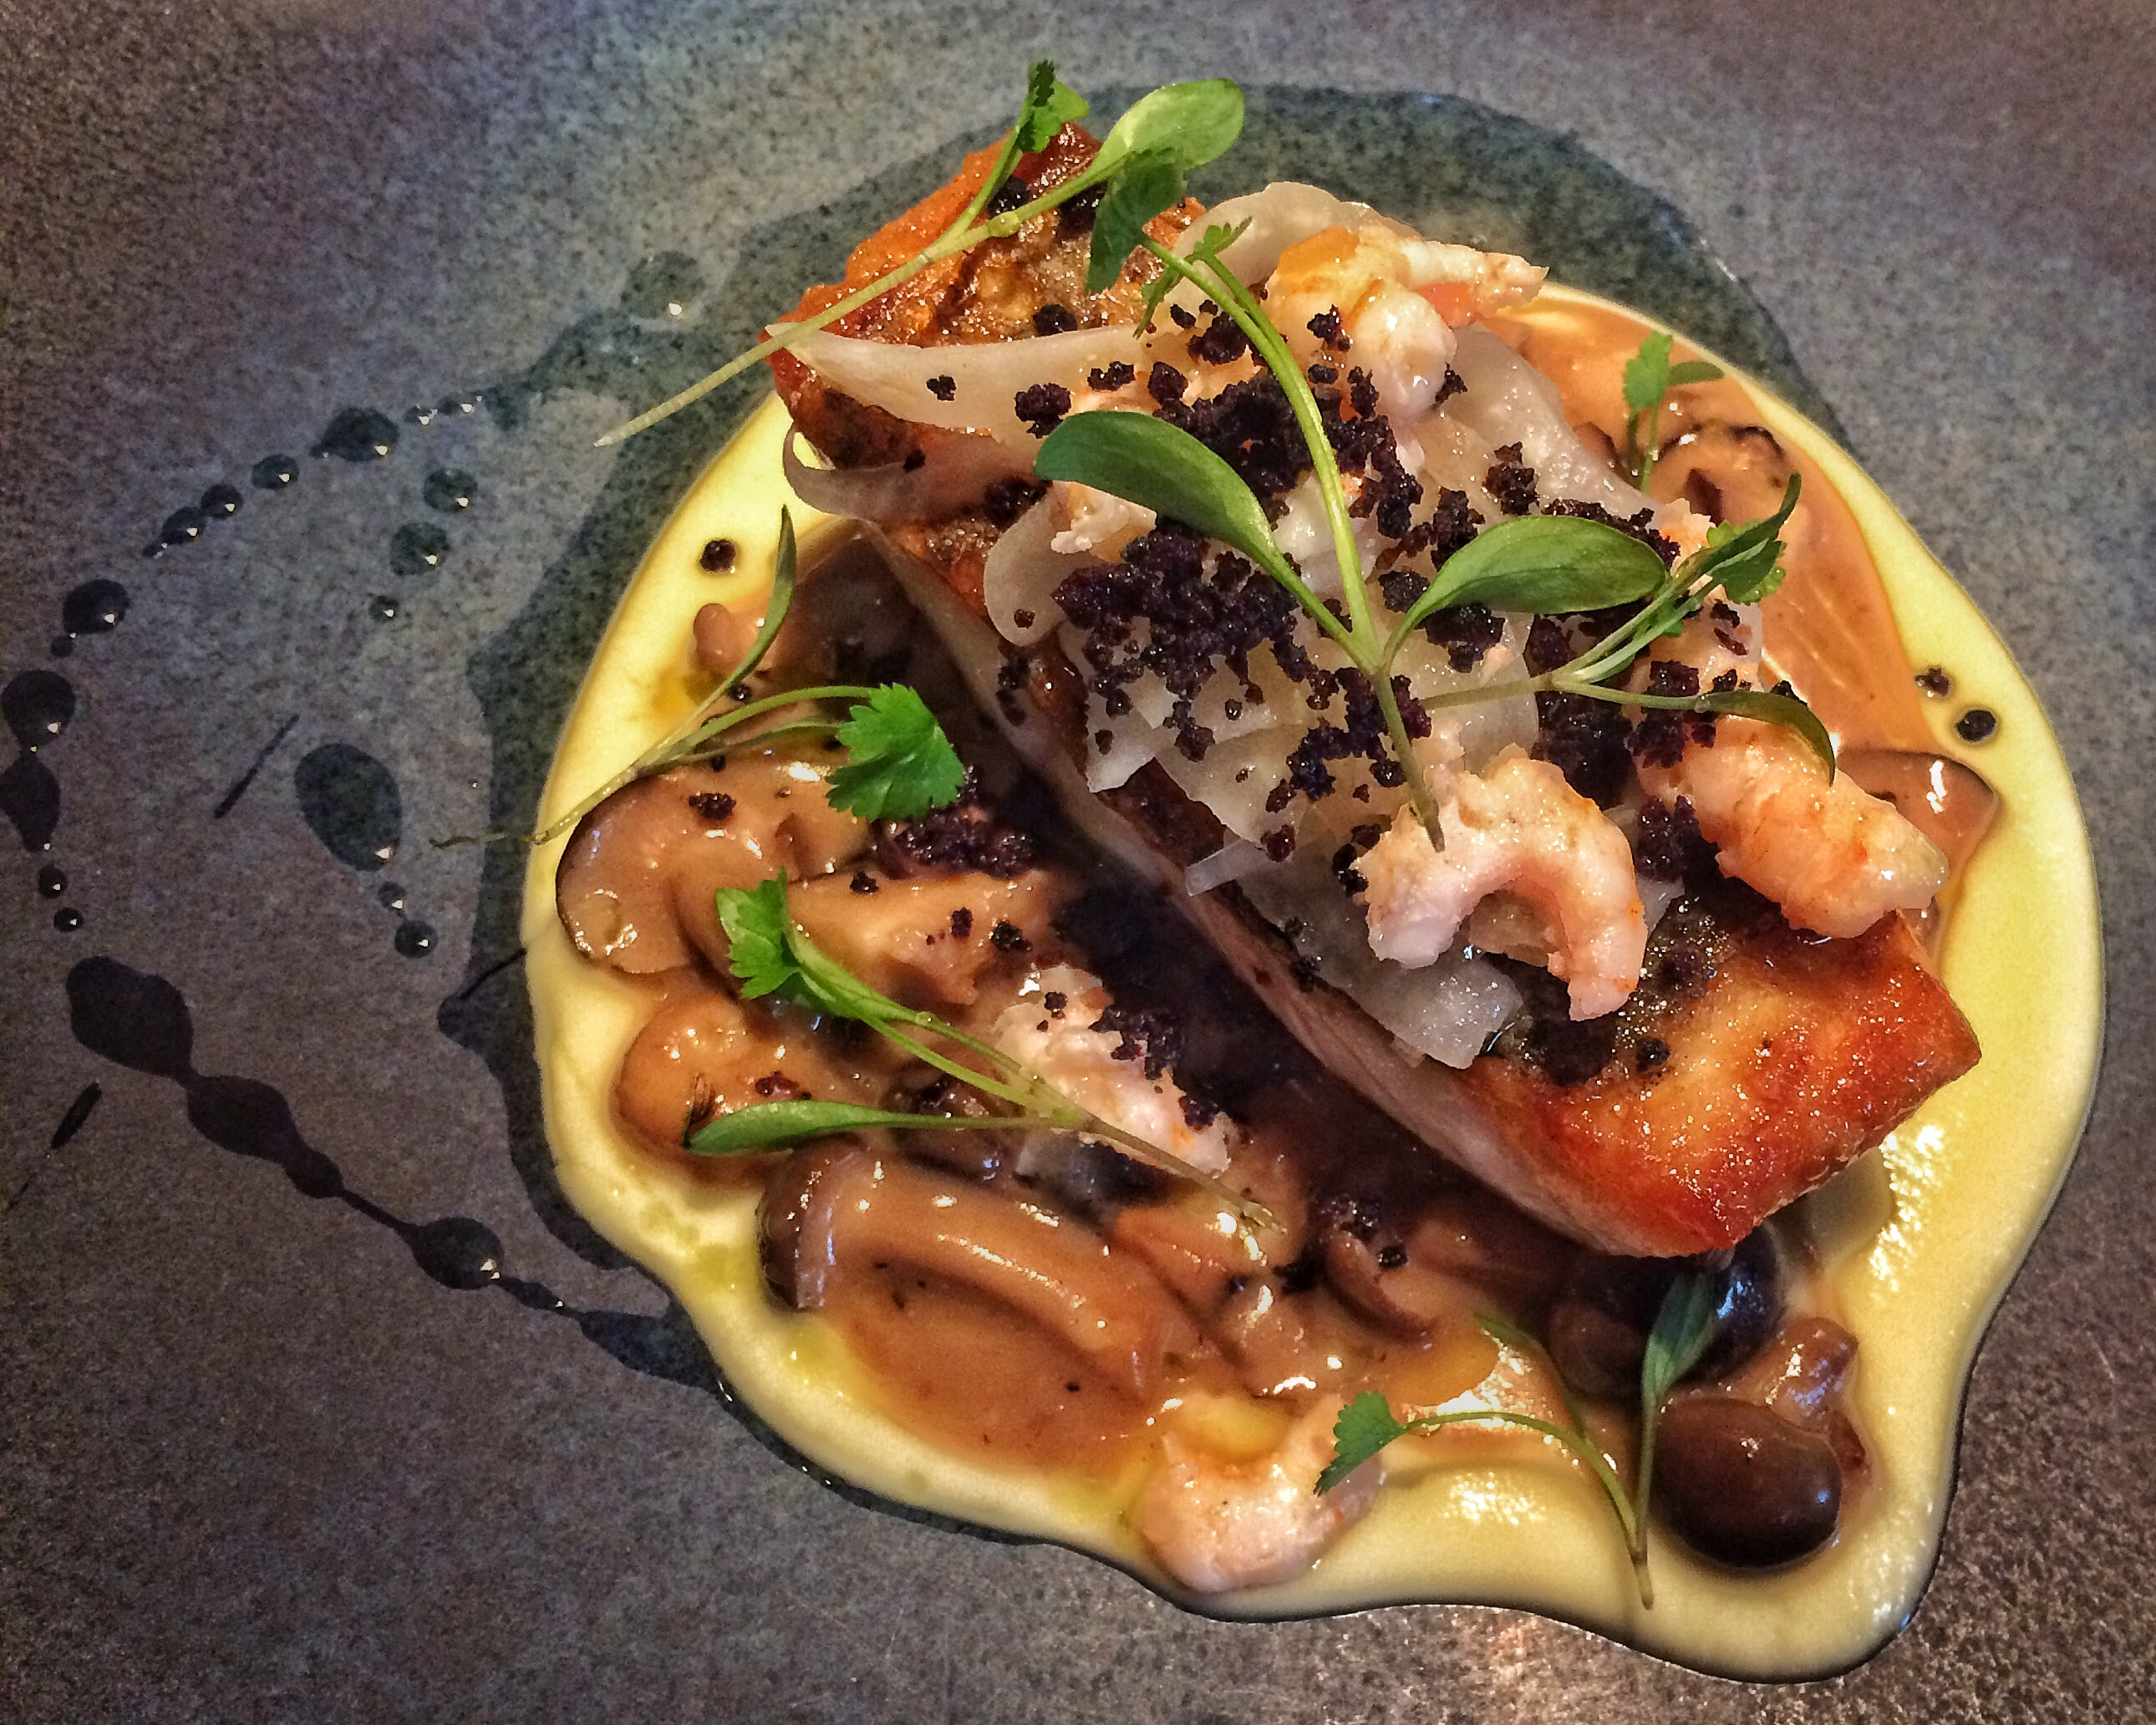 Seabass with Fennel & Poached Cultivated Mushrooms, Atlantic Shrimp, Black Olive Crumb with Virgin Olive Oil